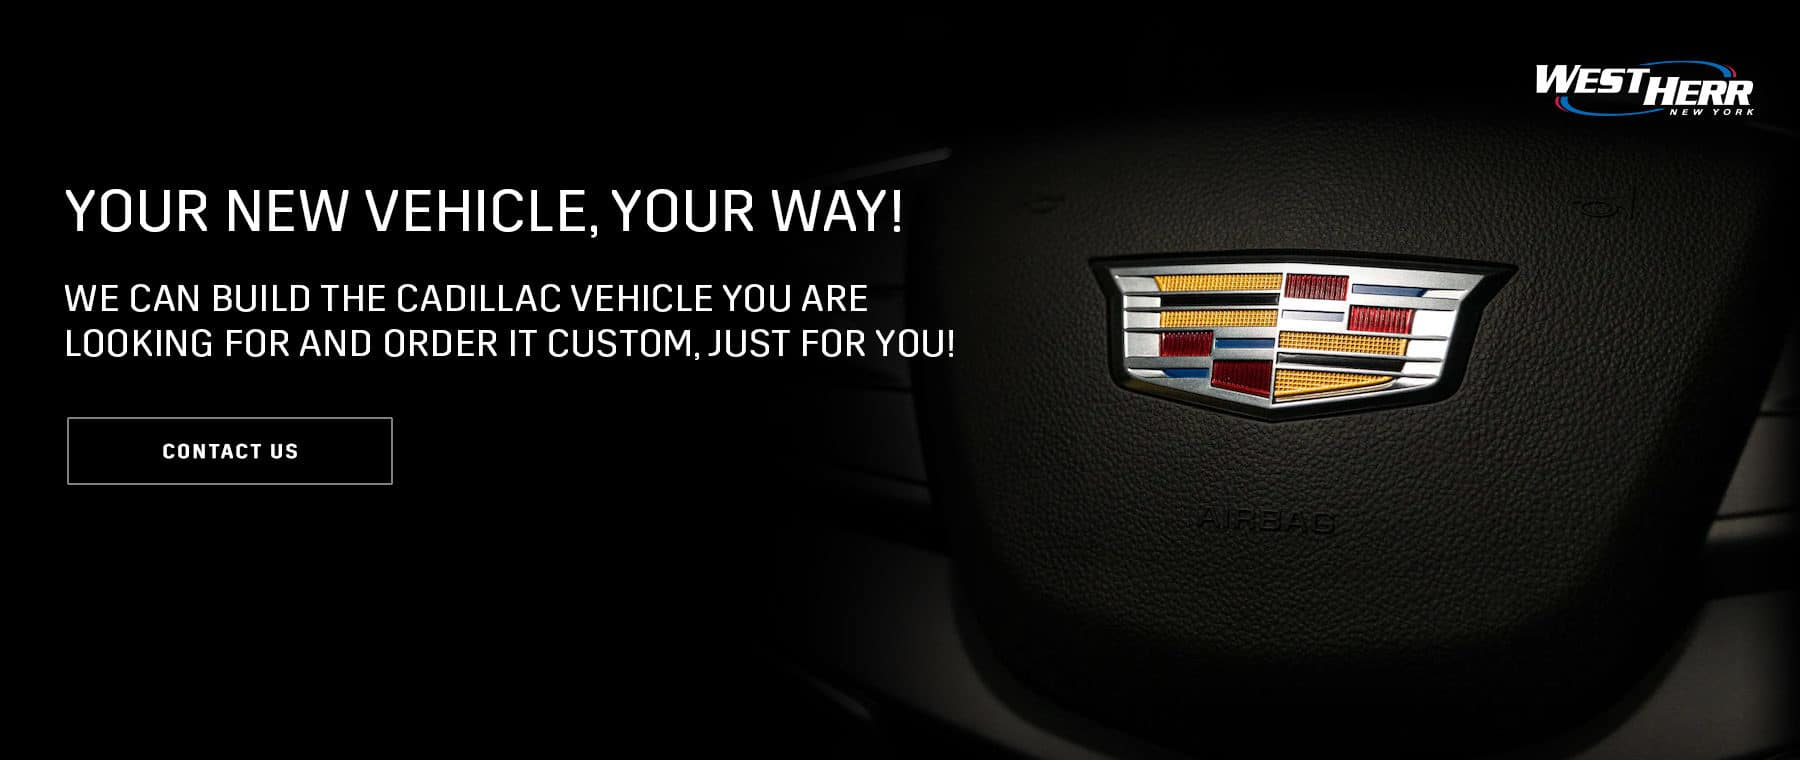 We can build the Cadillac vehicle you are looking for and order it custom, just for you!